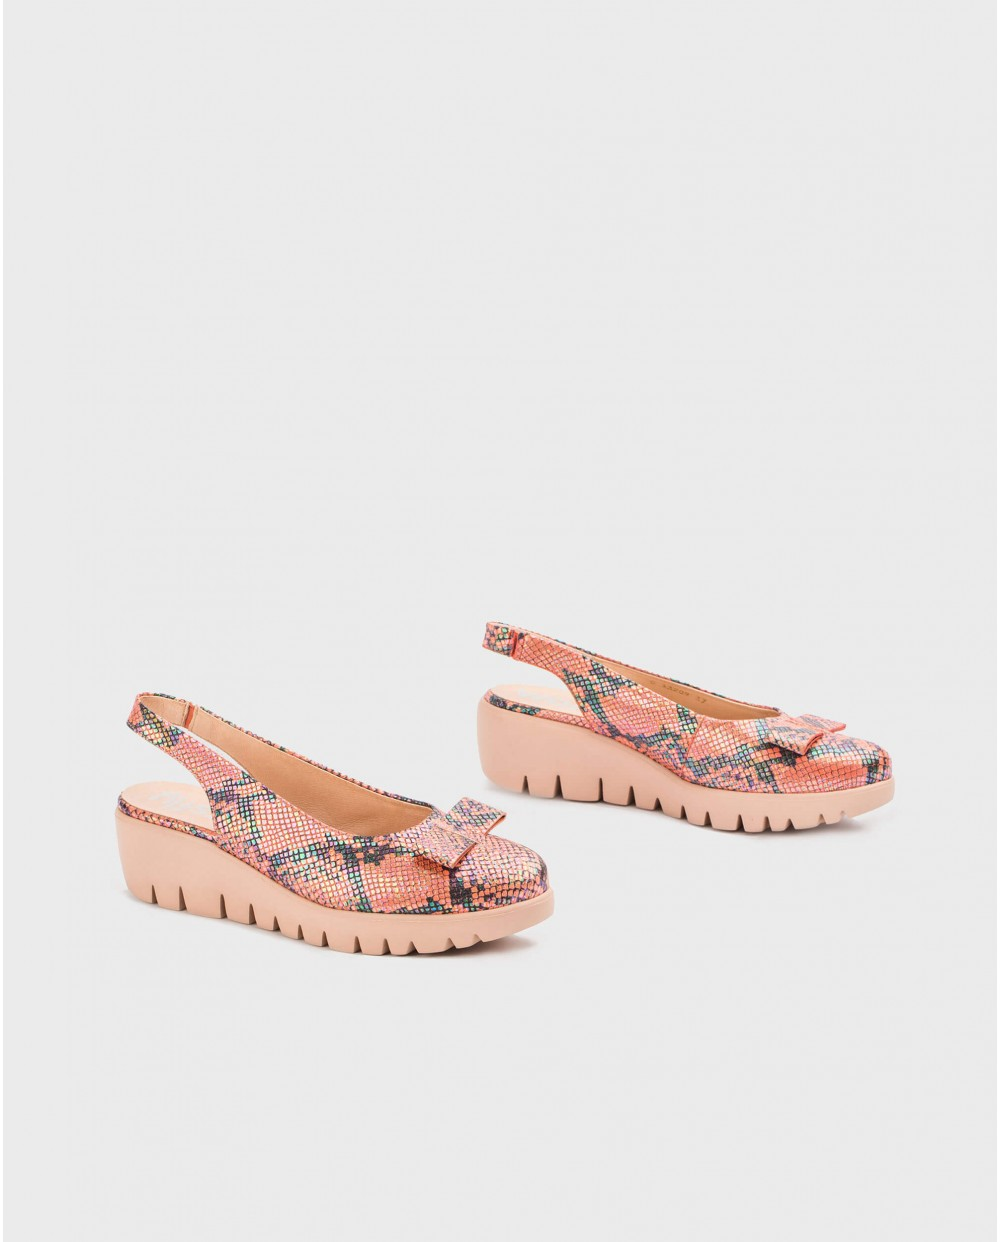 Wonders-Wedges-Backless moccasin with bow